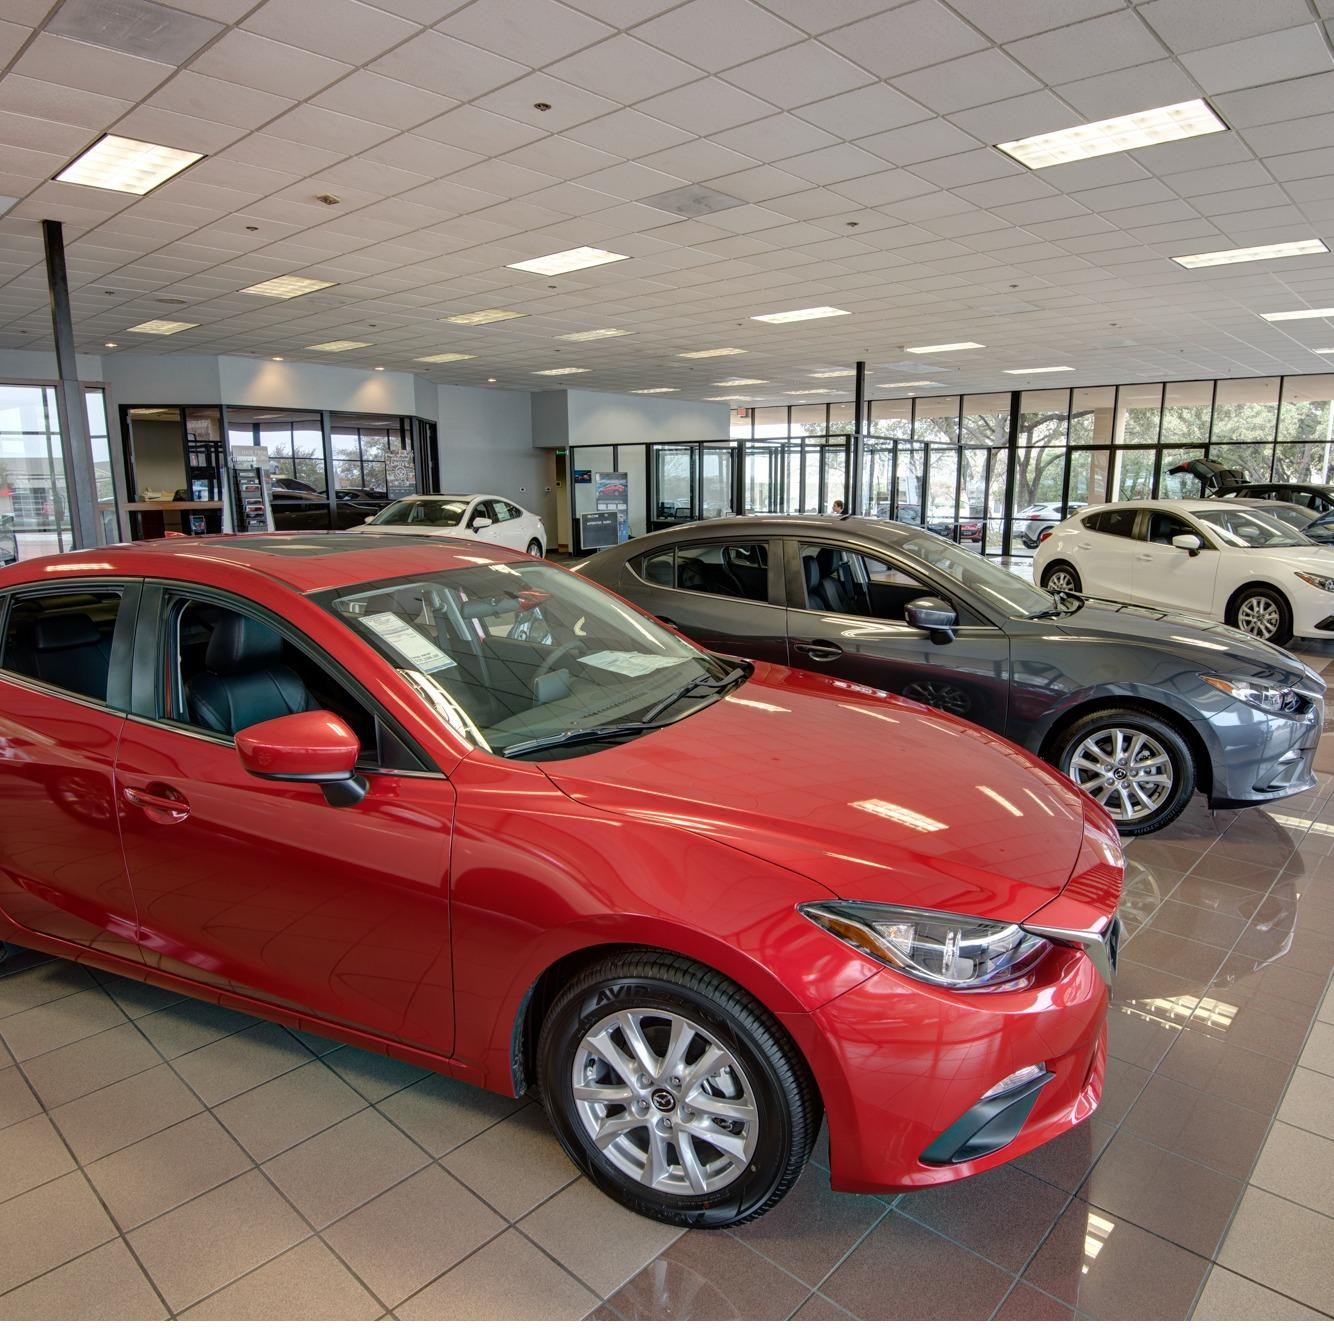 Car Dealer in TX Fort Worth 76132 AutoNation Mazda Fort Worth 5000 Bryant Irvine Road Suite 1 (817)406-2822